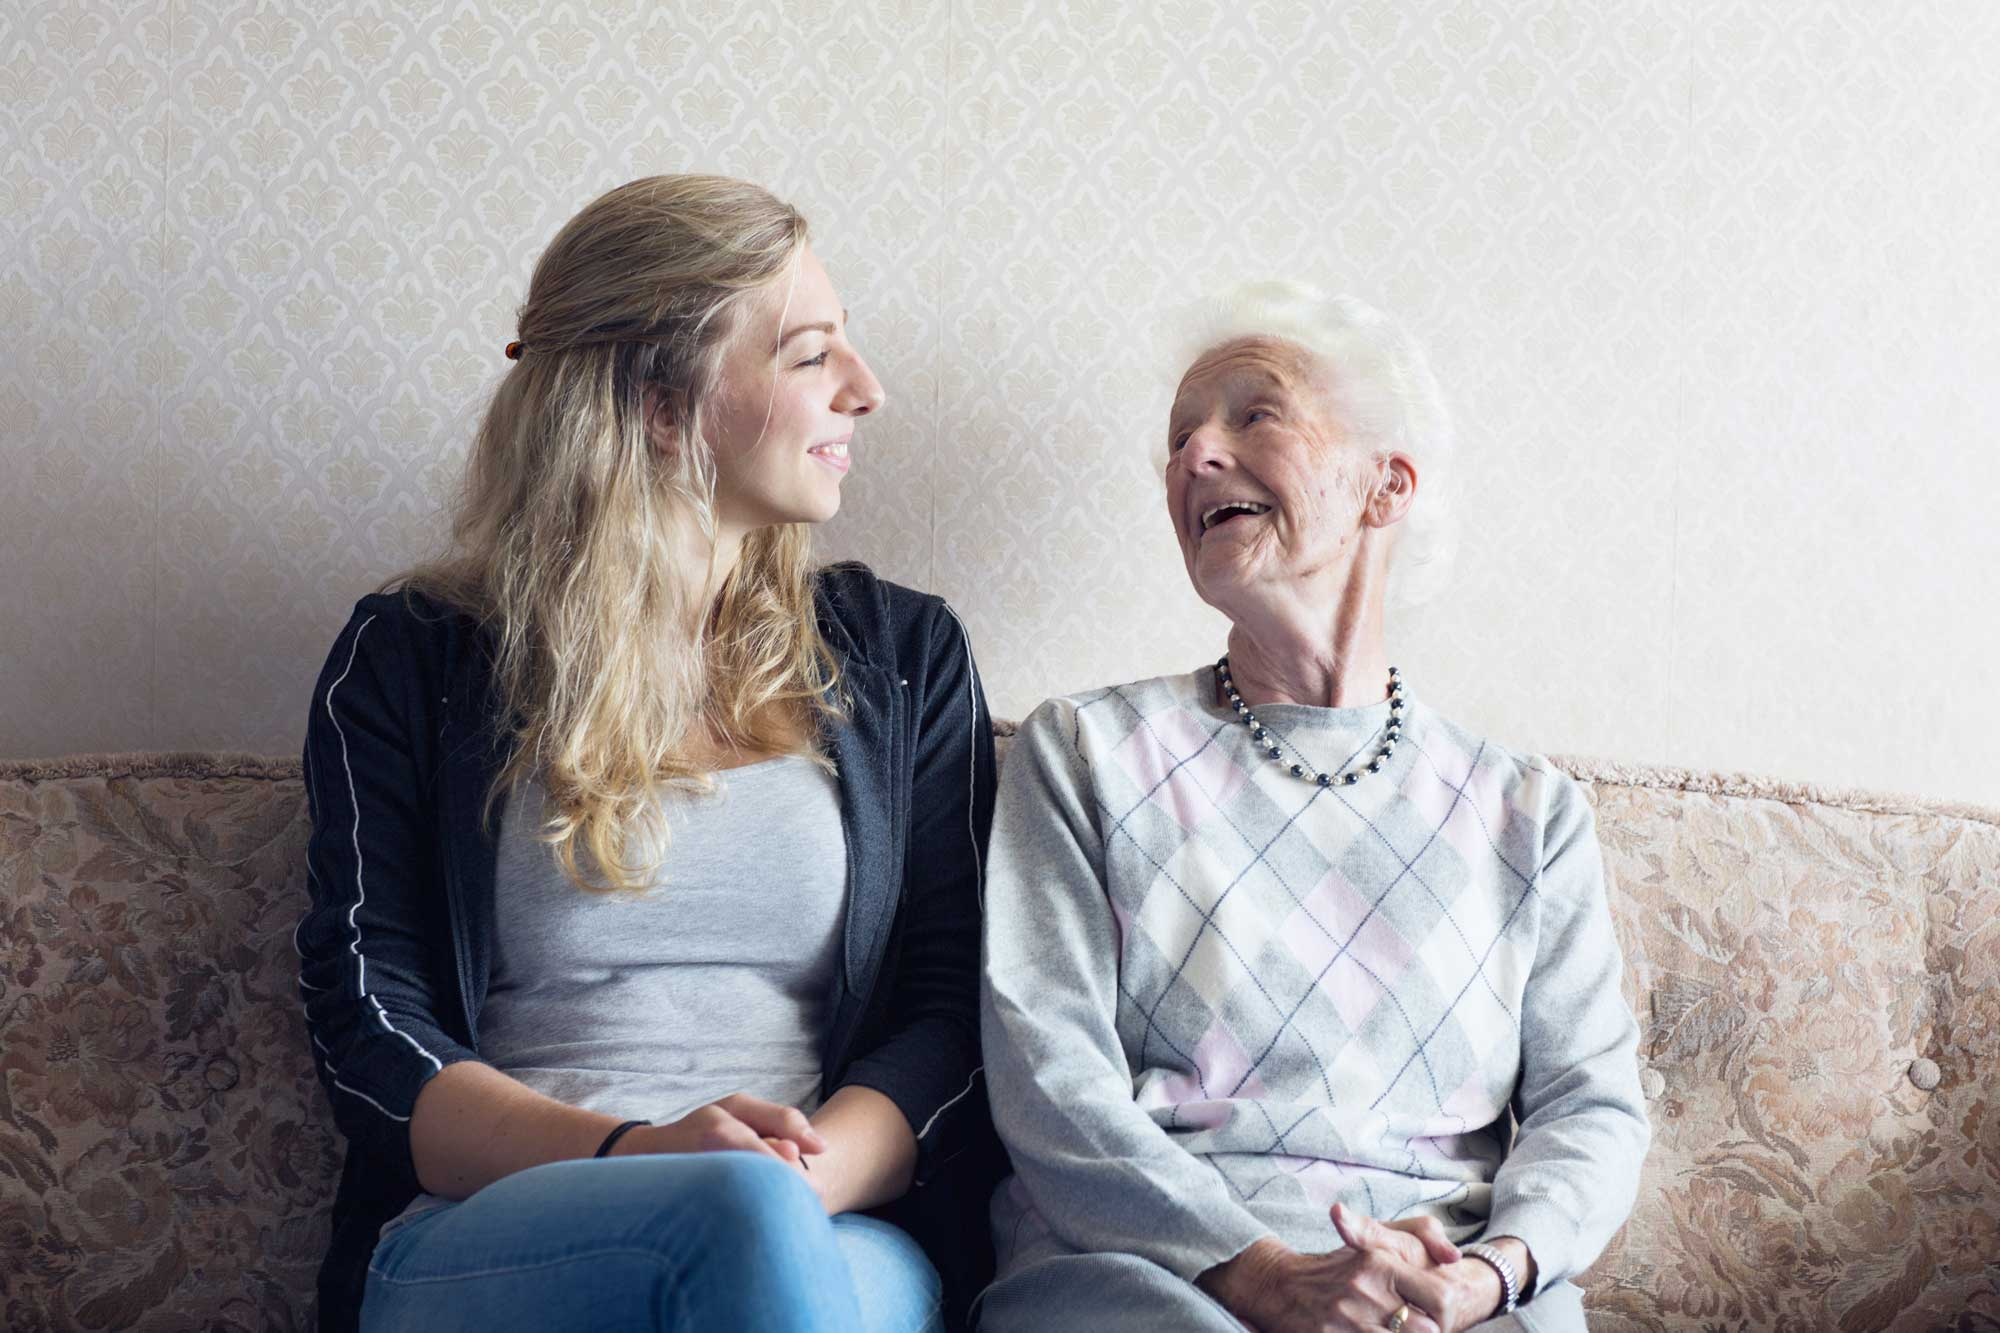 A young woman sits on a couch next to an elderly woman. The two are looking toward each other and smiling.